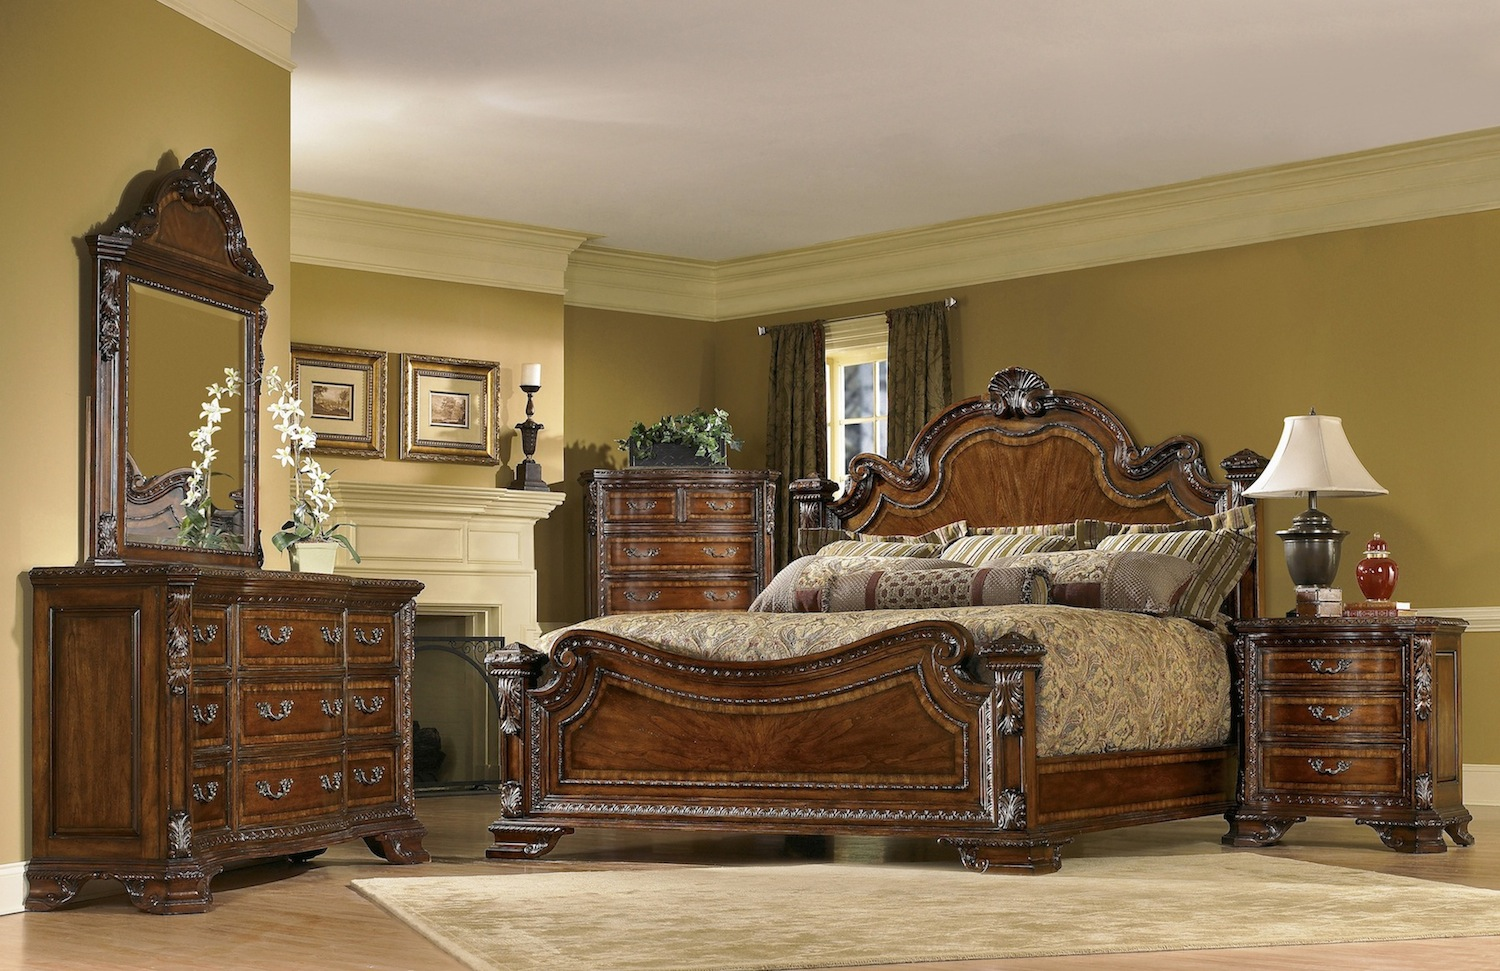 Old world traditional european style bedroom furniture set for Traditional bedroom furniture